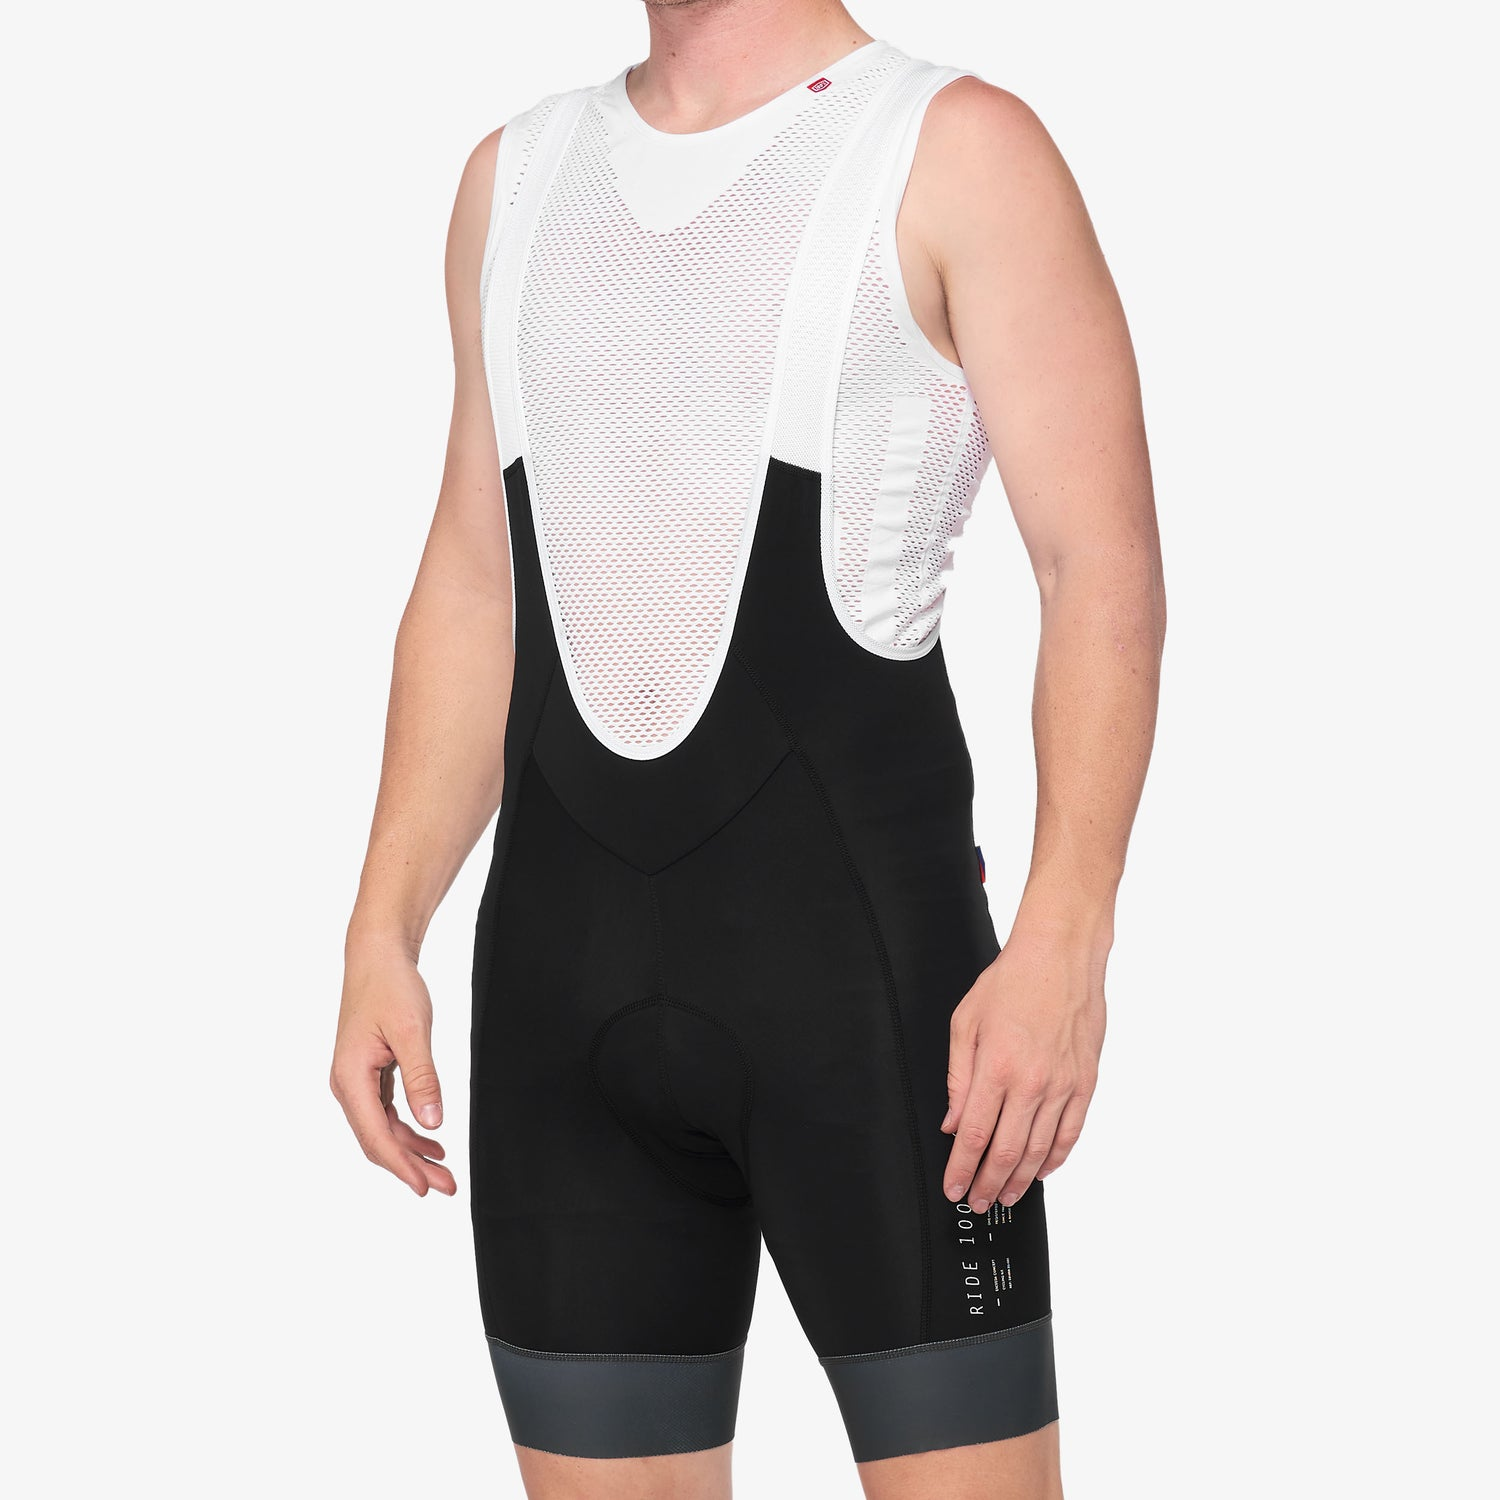 EXCEEDA Bib Shorts Black/Charcoal